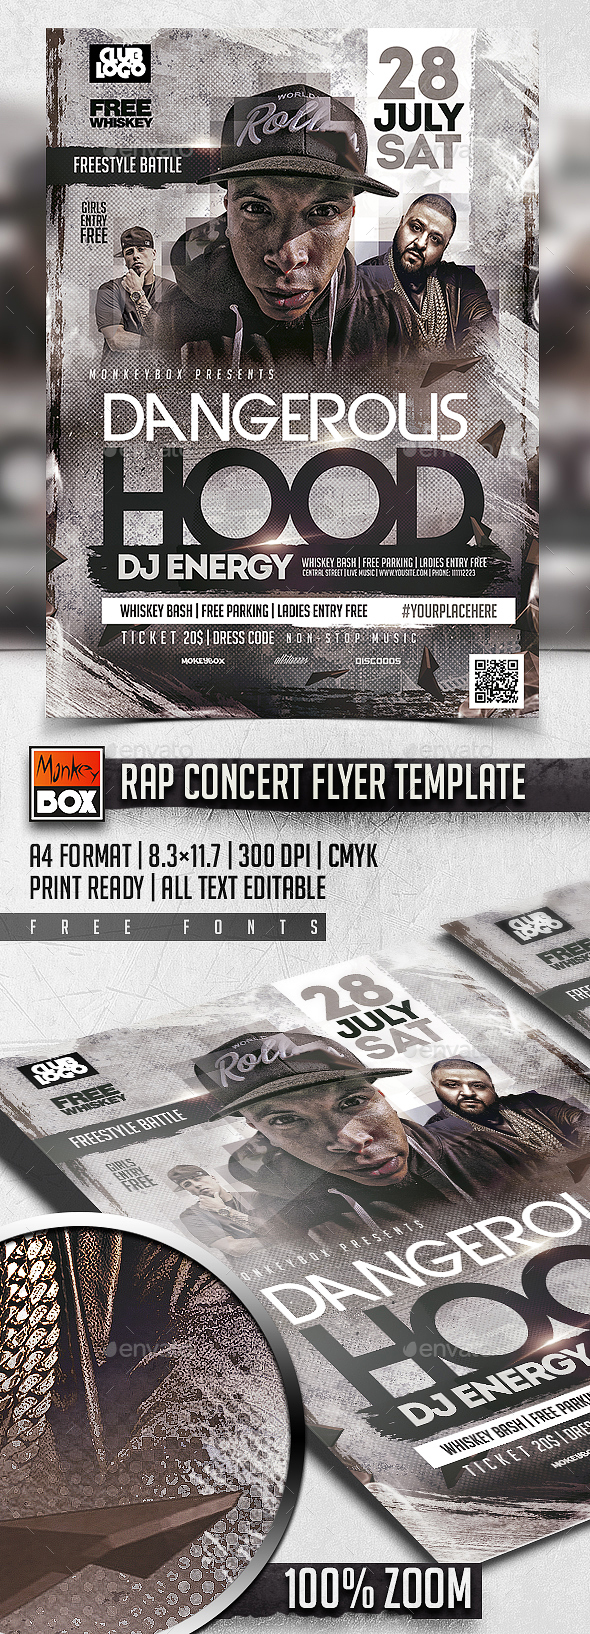 Photoshop concert poster templates